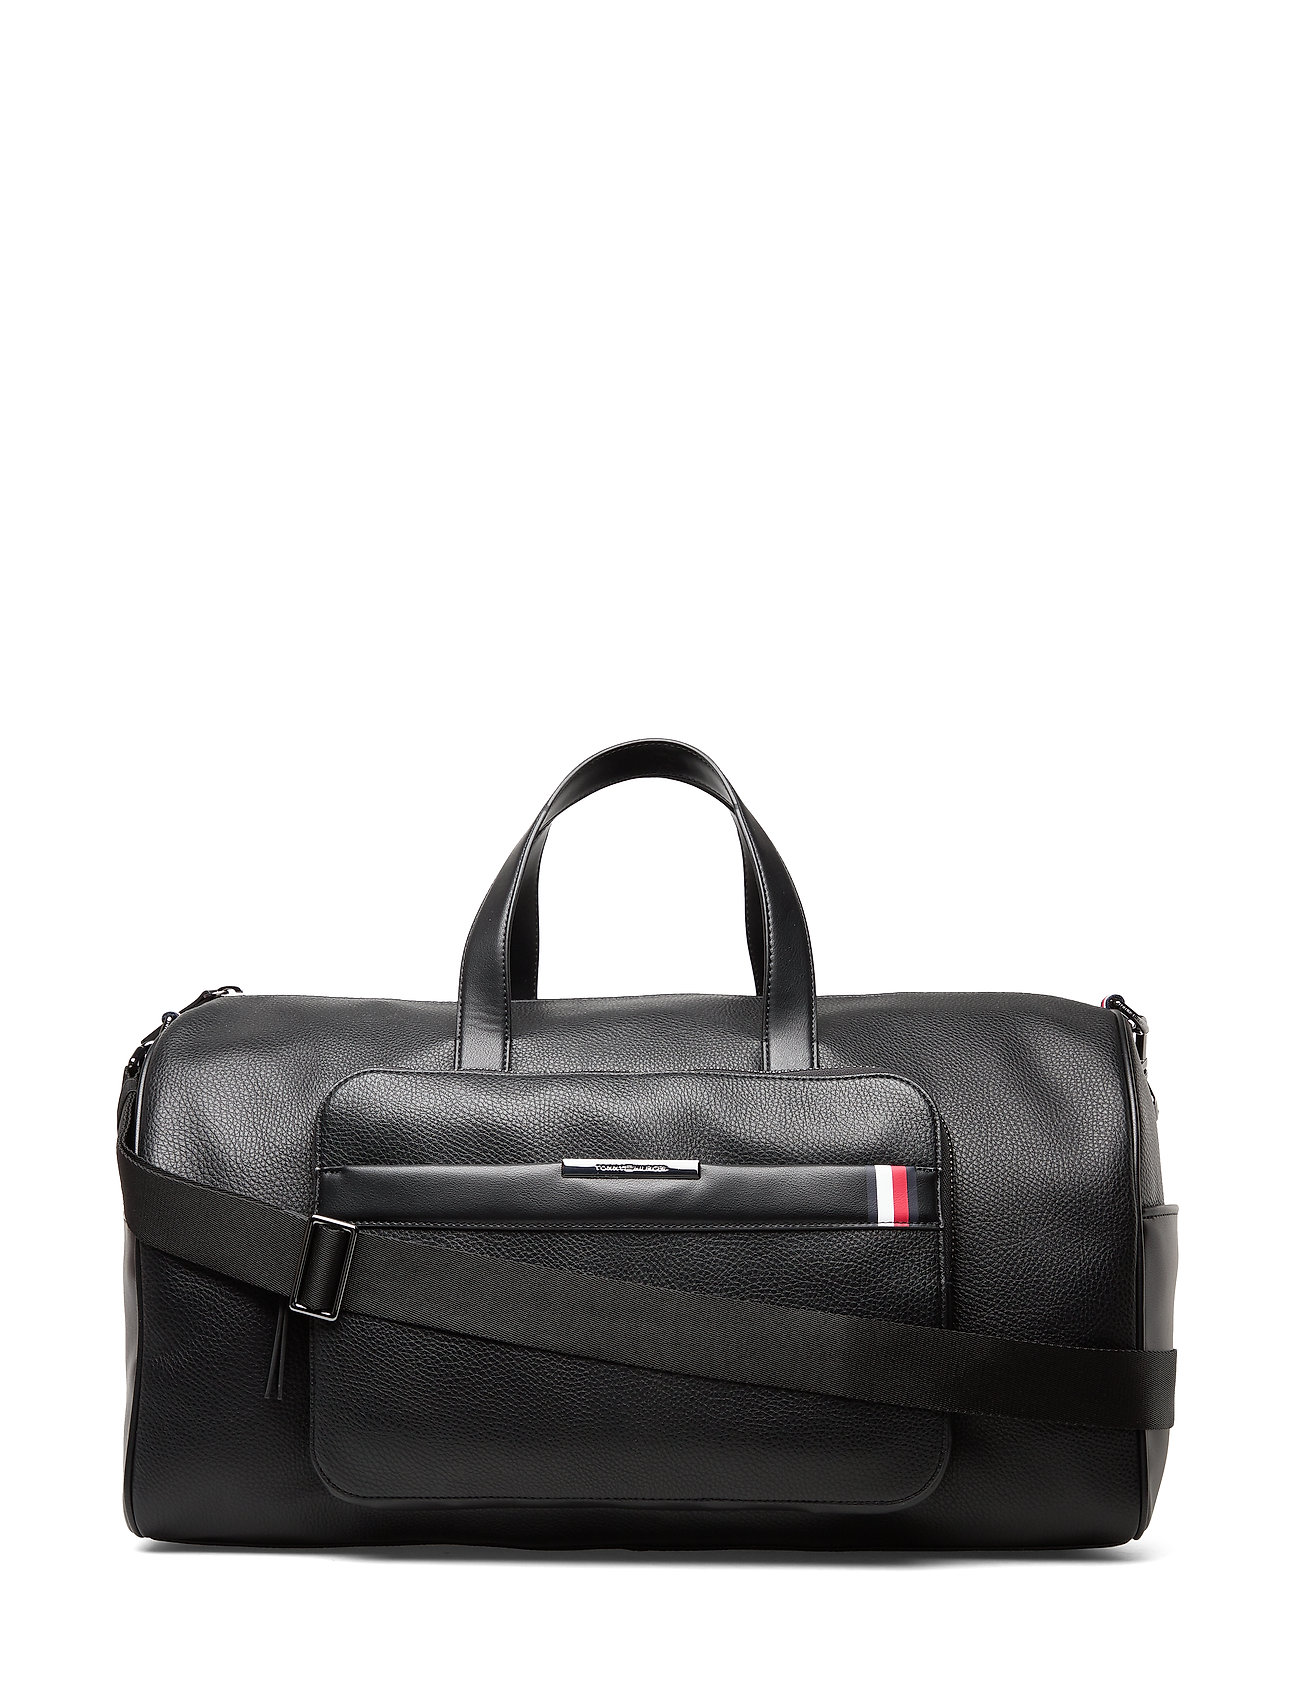 Tommy Hilfiger TH DOWNTOWN DUFFLE - BLACK